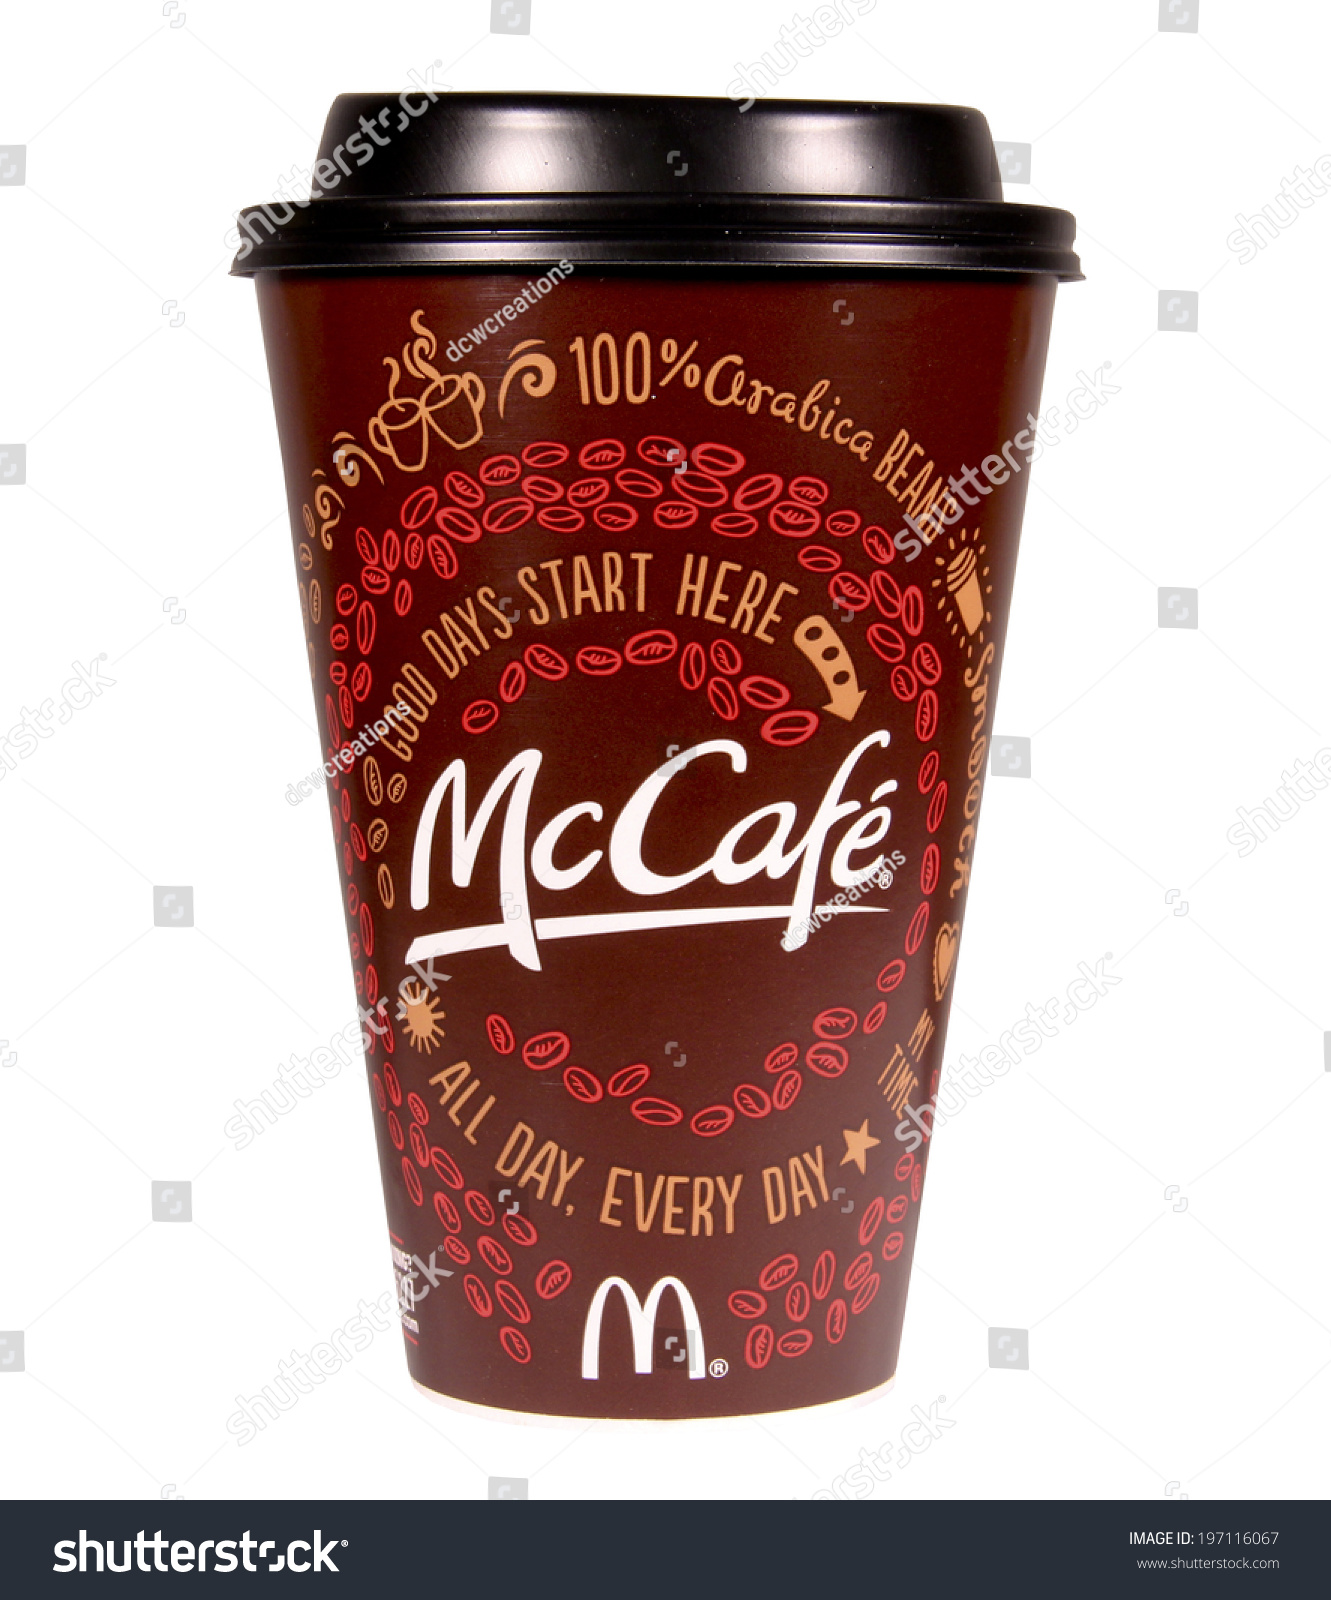 mcdonald s and the mccafe coffee initiative Case analysis of mcdonald's mccafe coffee initiative introduction mcdonalds's is a hamburger restaurant that offers diverse menu and quick services in 121 countries across the world mcdonalds has experienced rapid growth, partly attributable to the successful ad promotions and innovations in its menu.